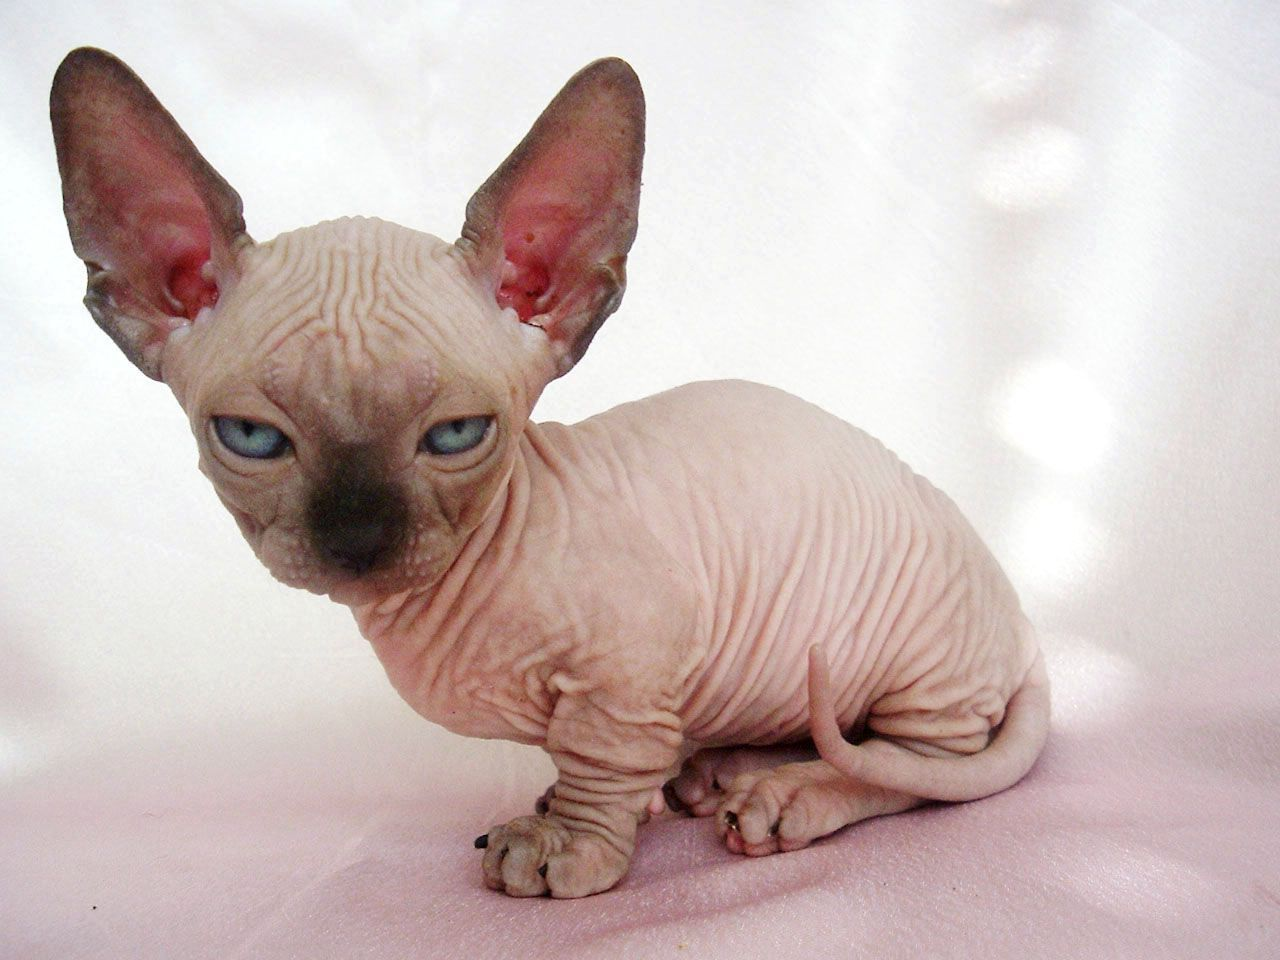 Pin By Blanca Rocha On Animals In 2020 Baby Hairless Cat Cat Allergies Fluffy Cat Breeds